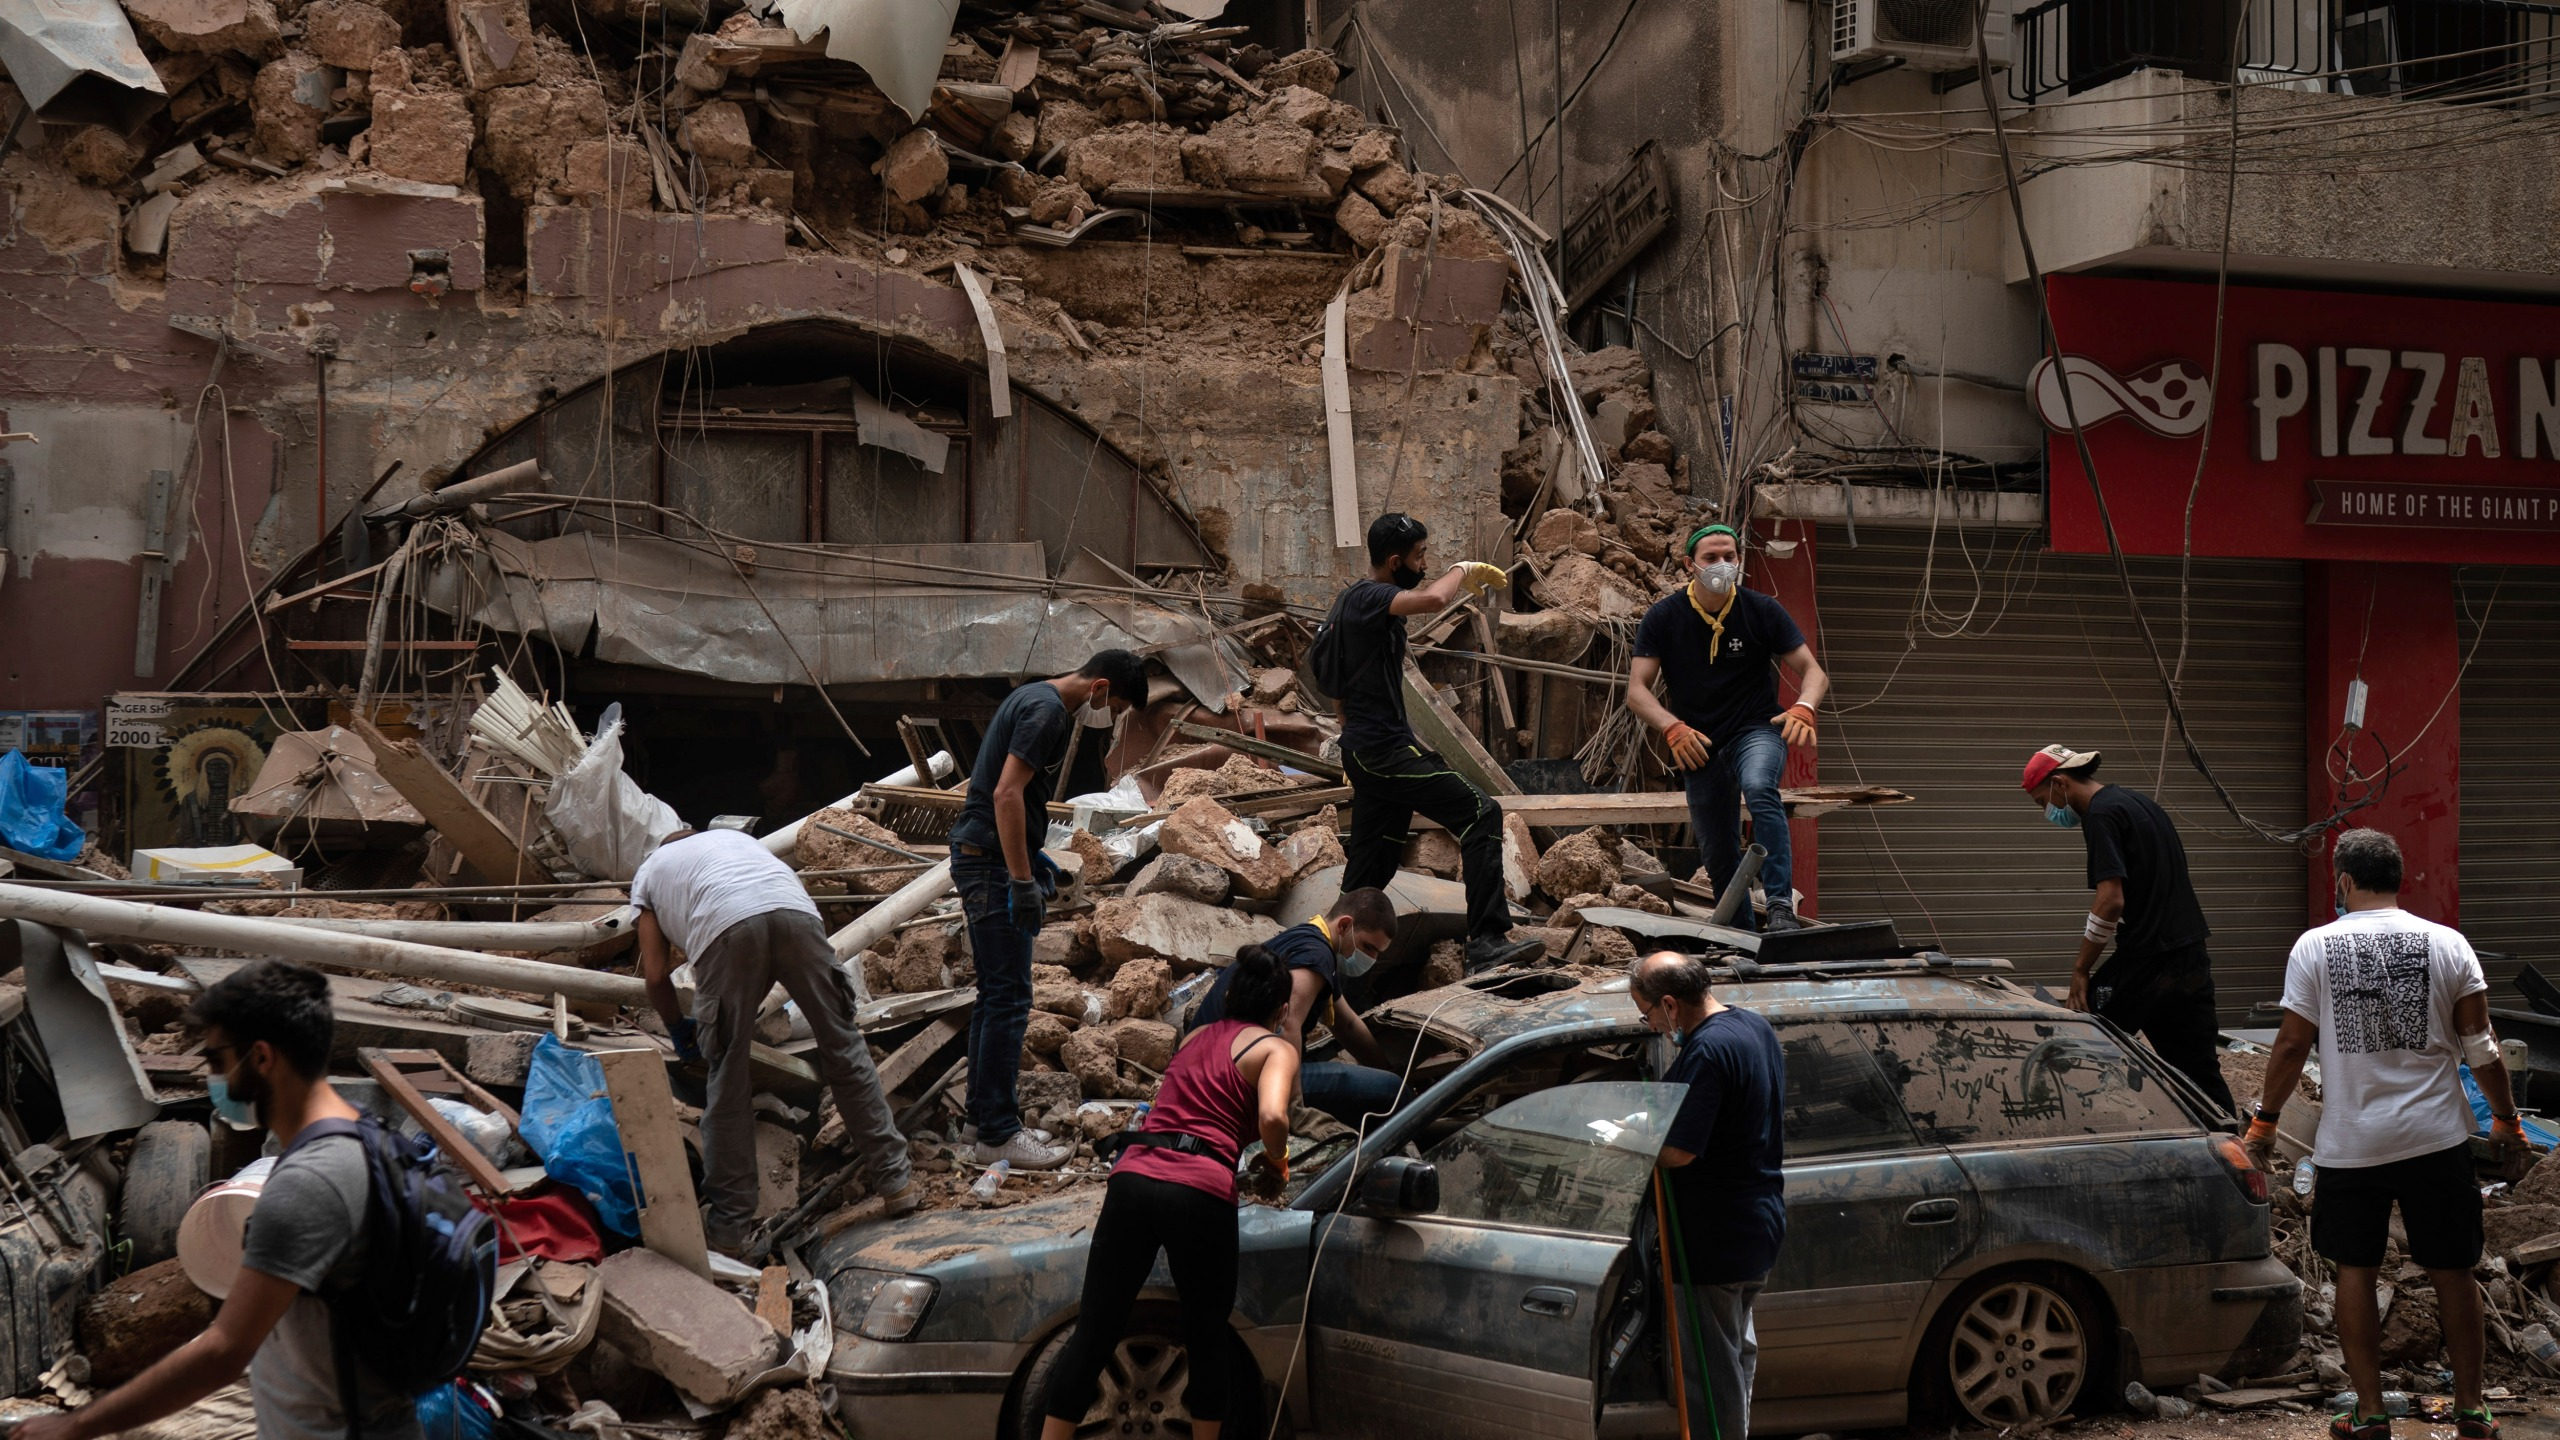 People remove debris from a house damaged by Tuesday's explosion in the seaport of Beirut, Lebanon, Friday, Aug. 7, 2020. (AP Photo/Felipe Dana)